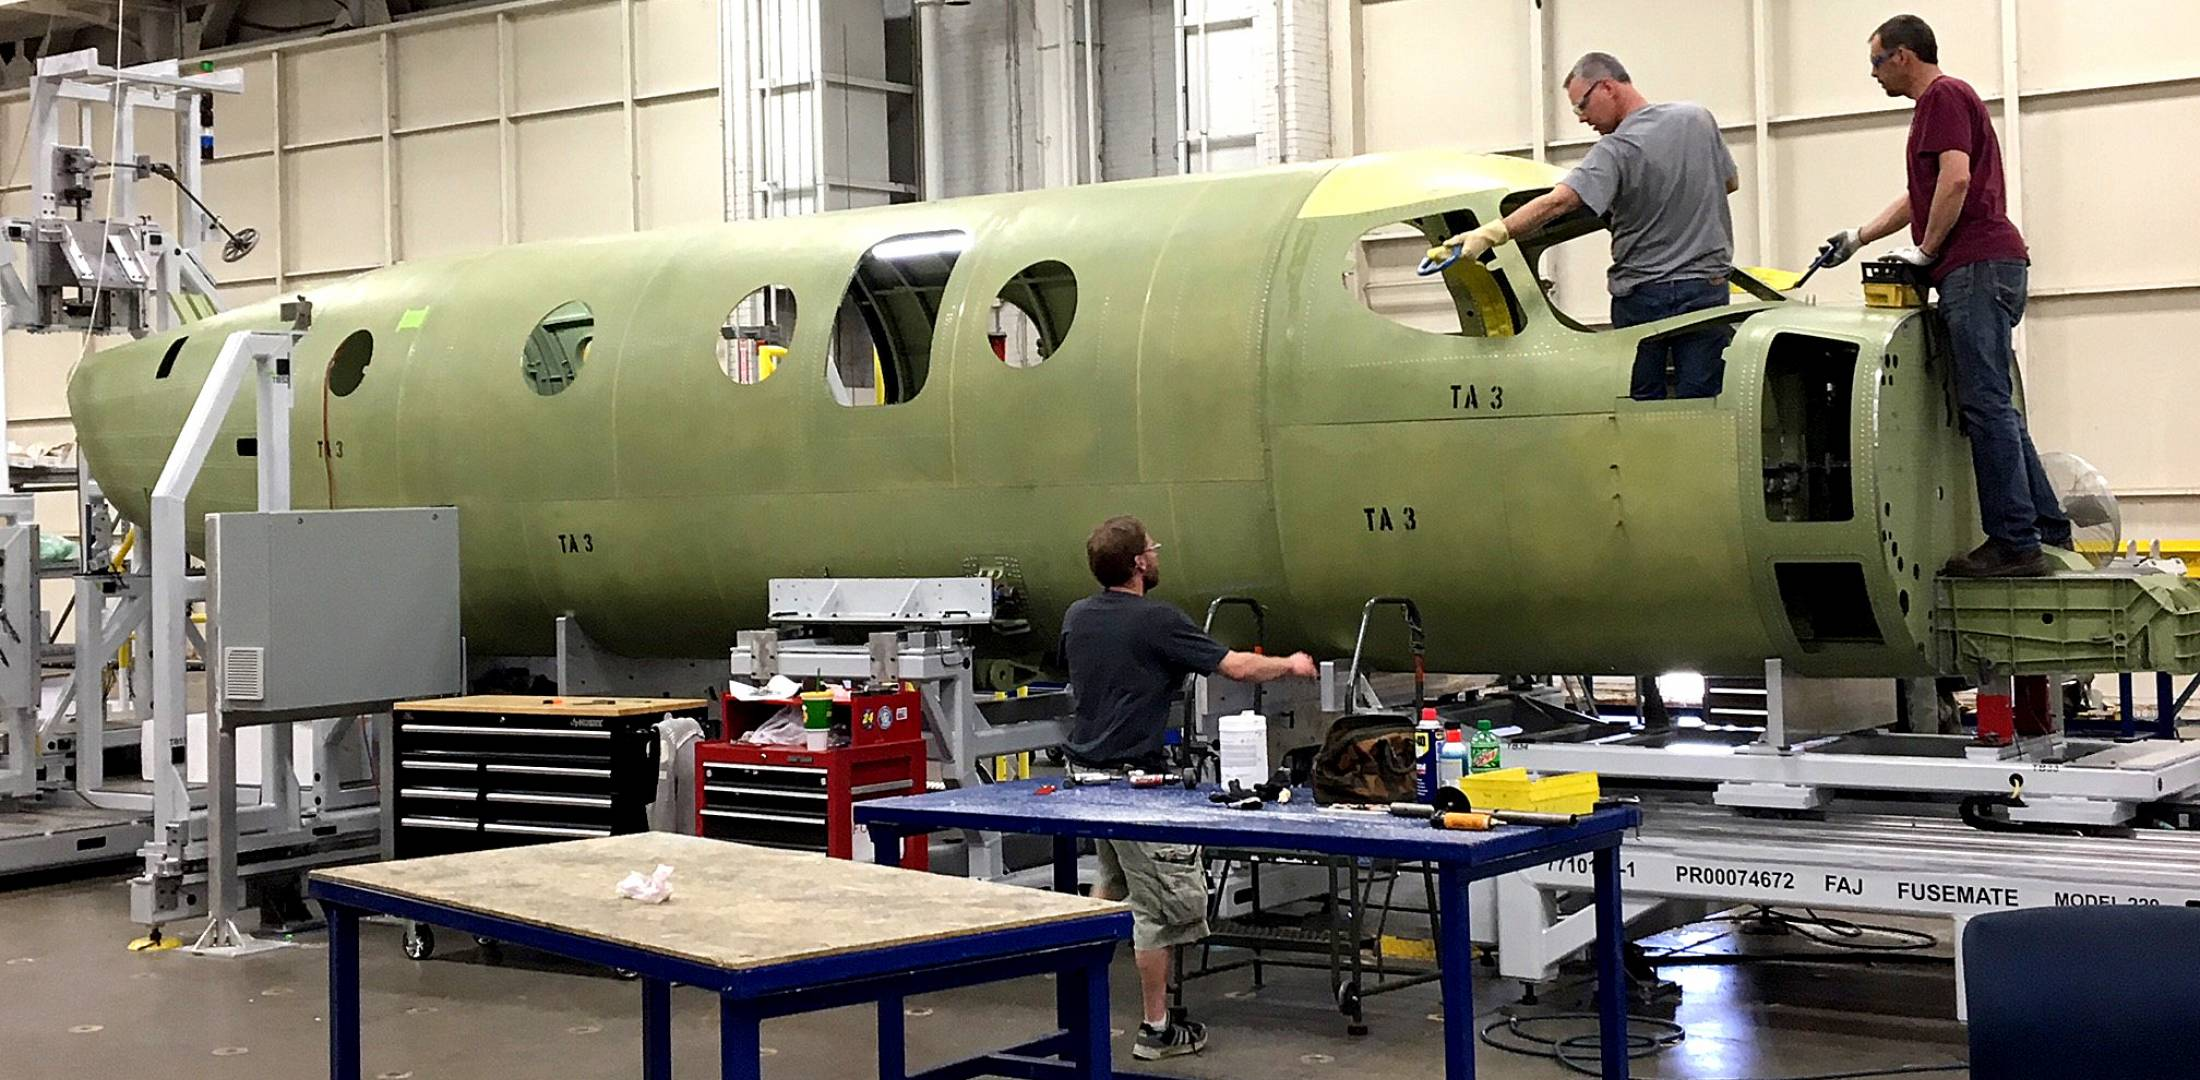 Modern manufacturing techniques ensure a precise fit between airframe sections, such as the nose and cabin of the Textron Aviation Denali turboprop single now under development.